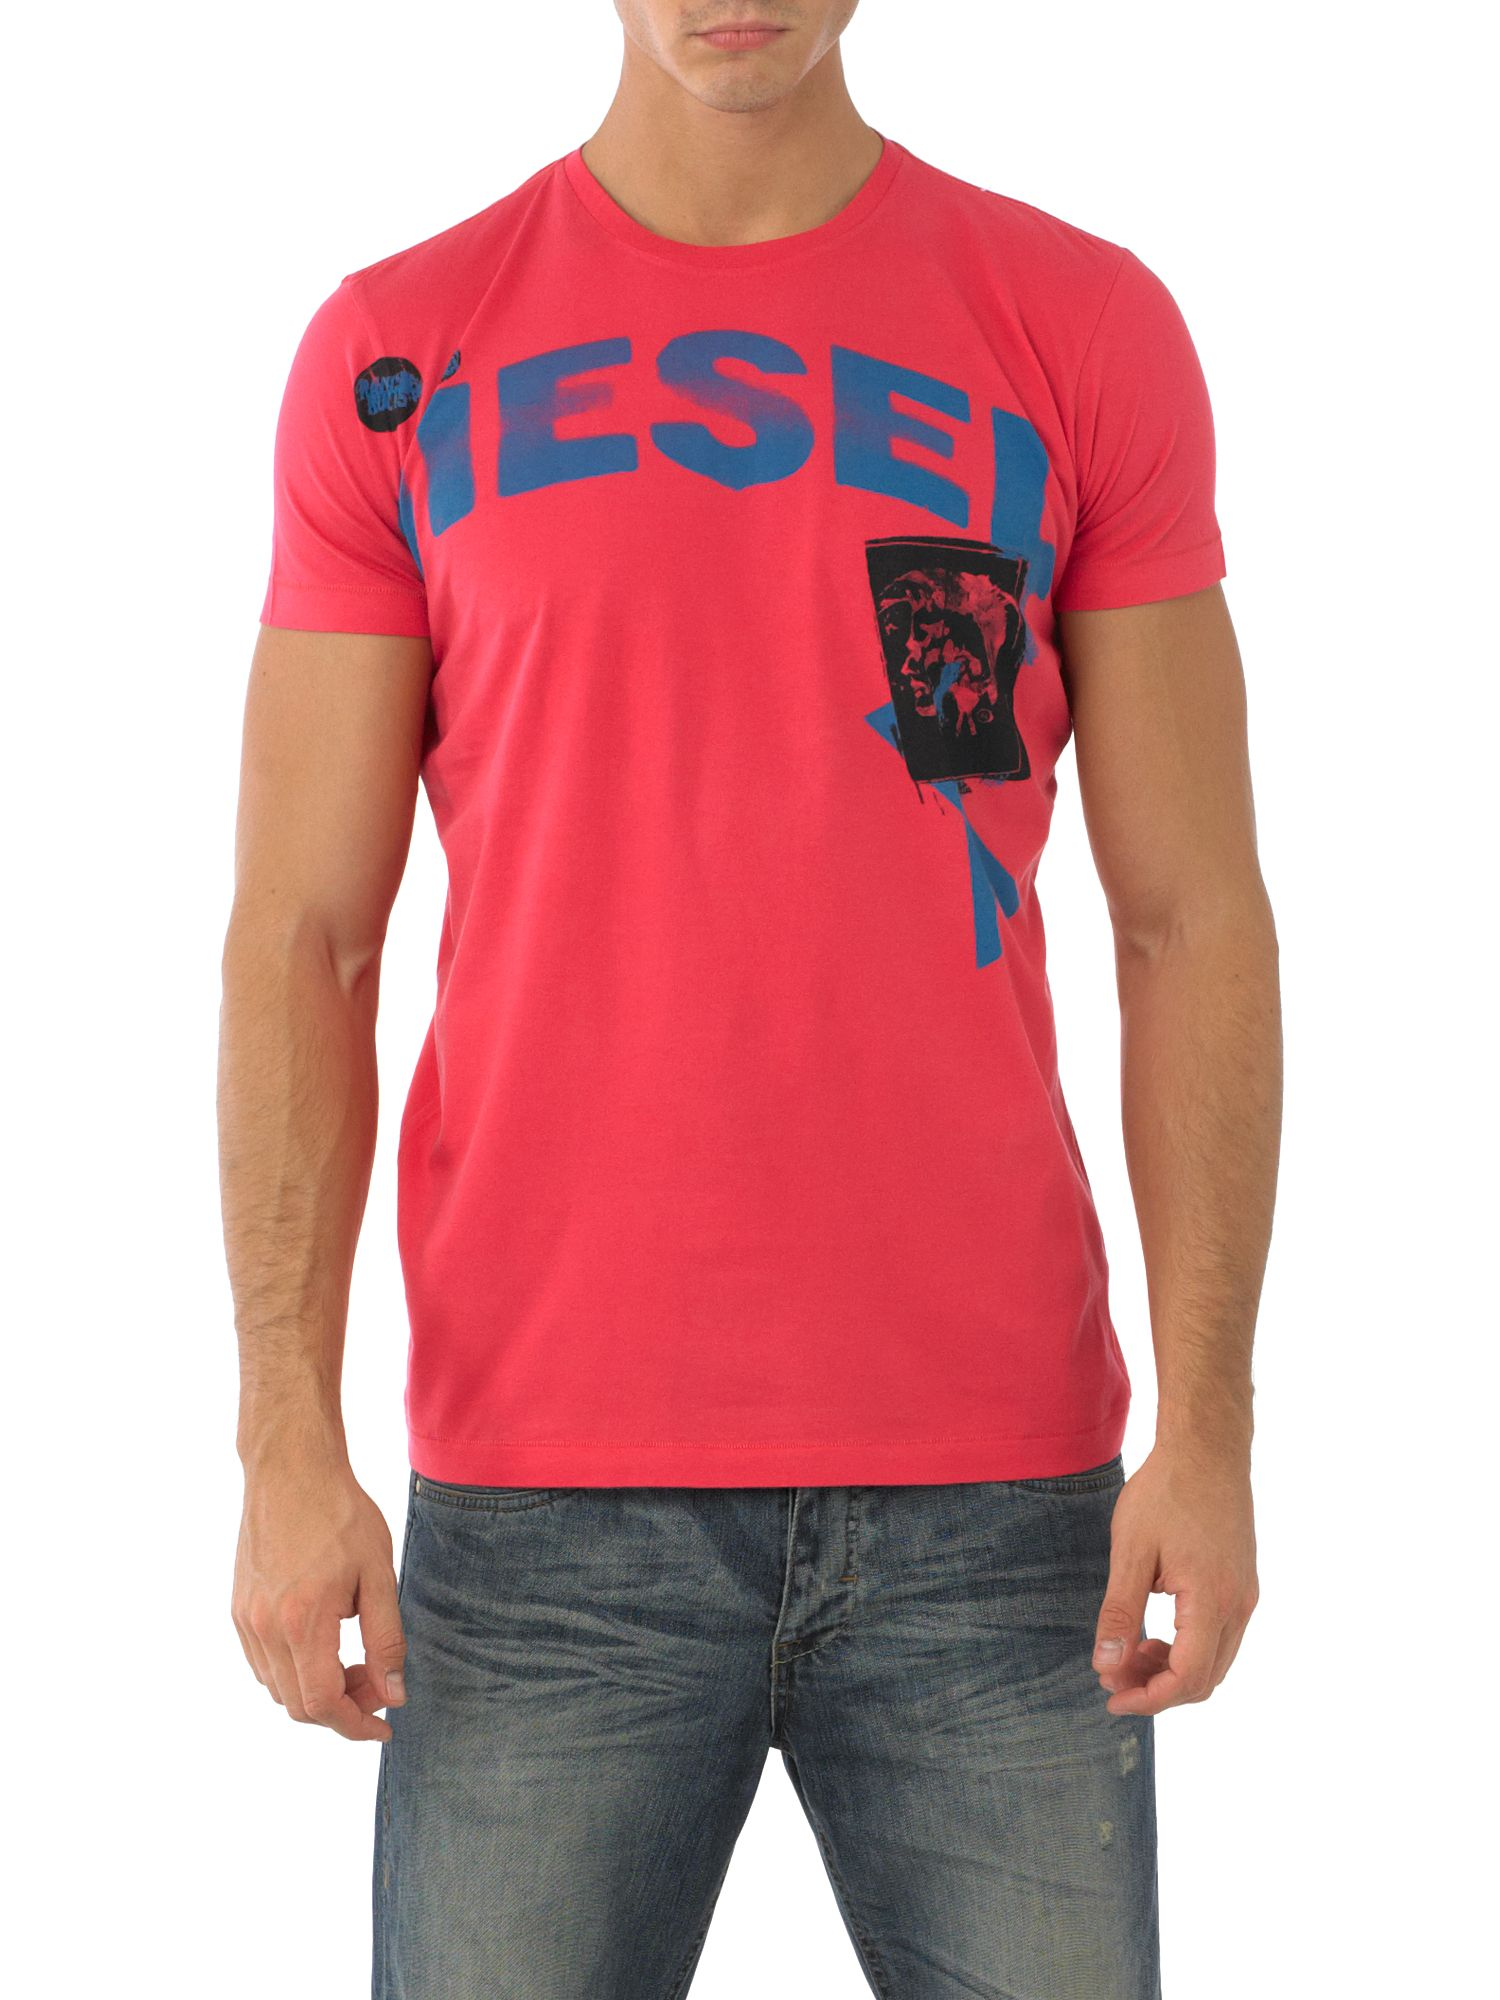 Diesel Printed T-shirt Red product image